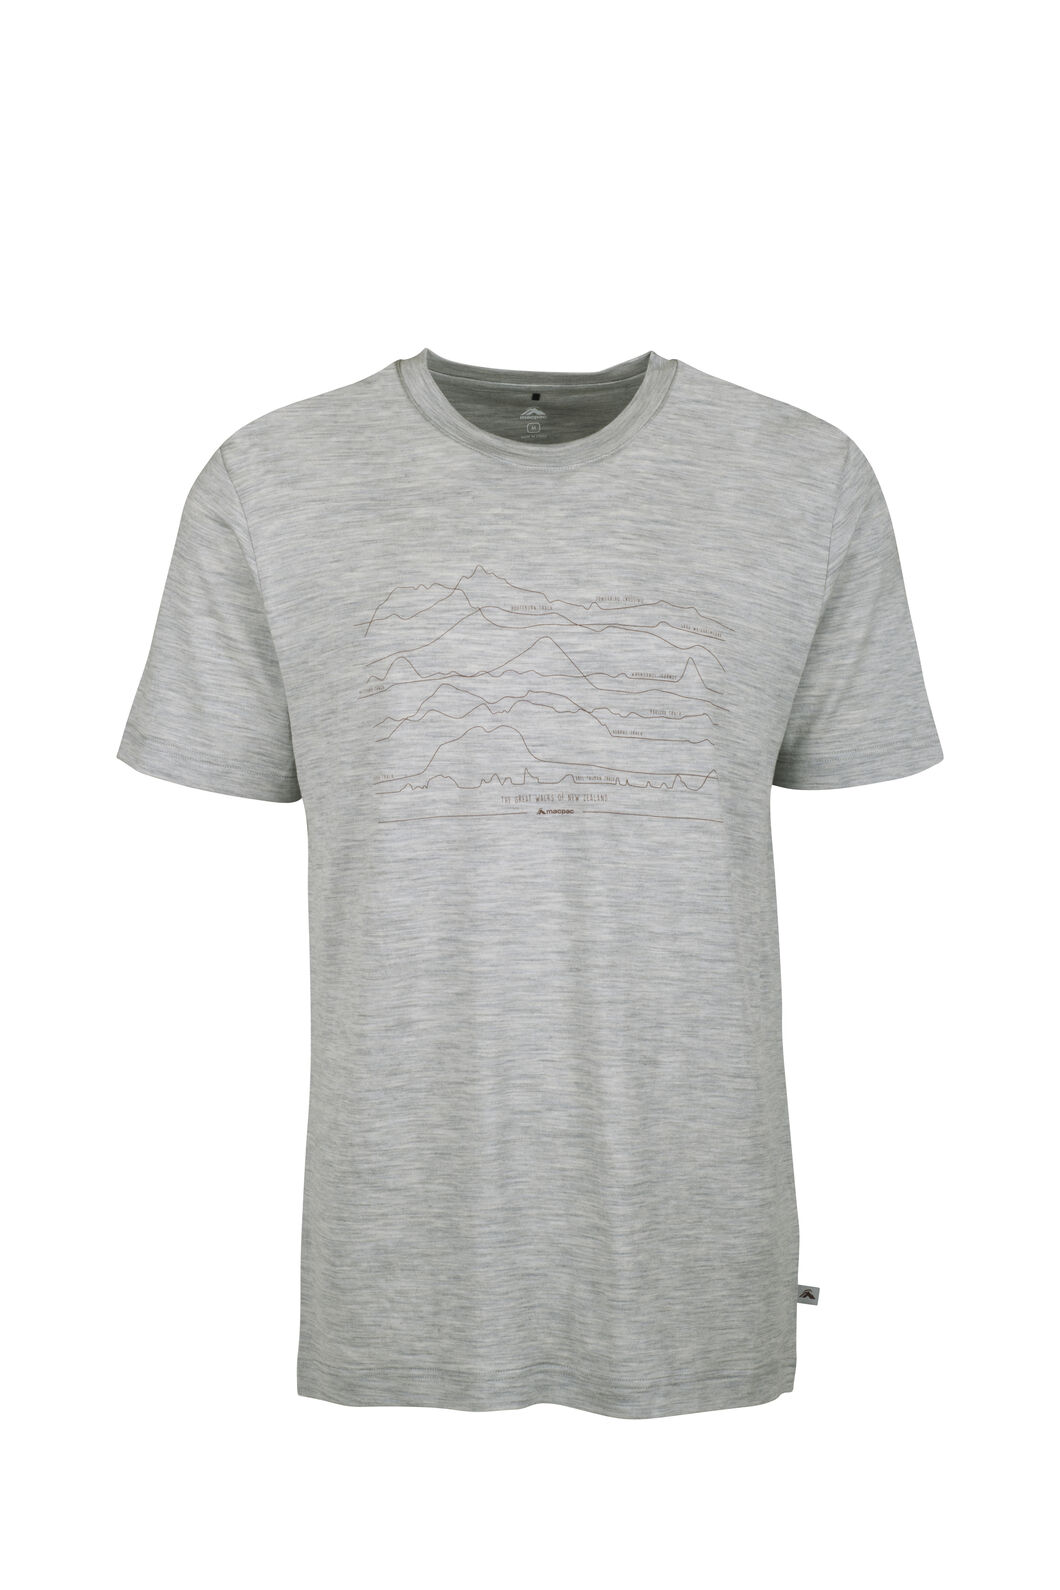 Macpac Great Walks Merino Tee - Men's, Light Grey Marle, hi-res